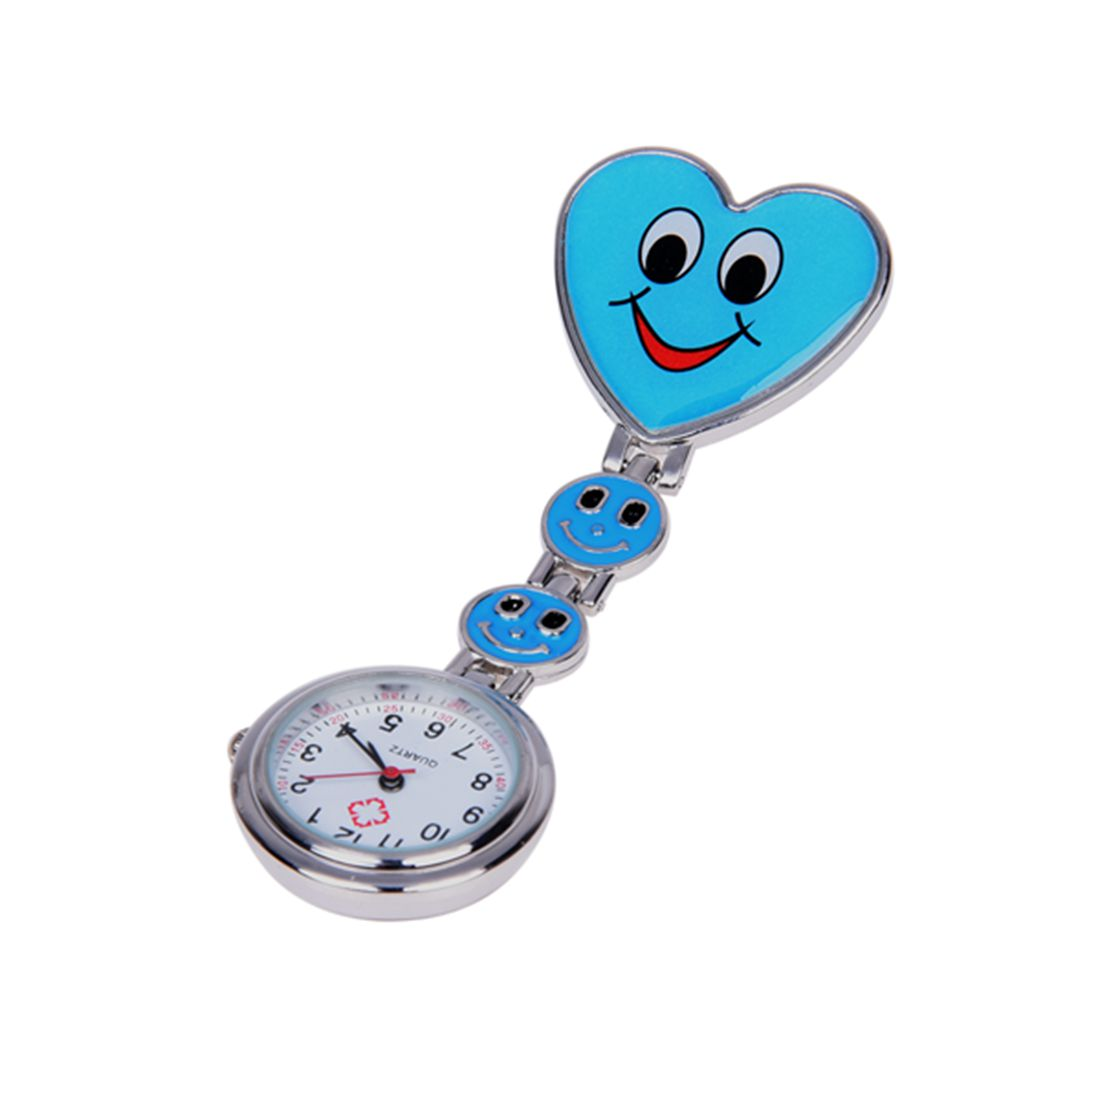 Blue Heart Quartz Movement Clip Nurse Brooch Fob Tunic Watch Smiley Face